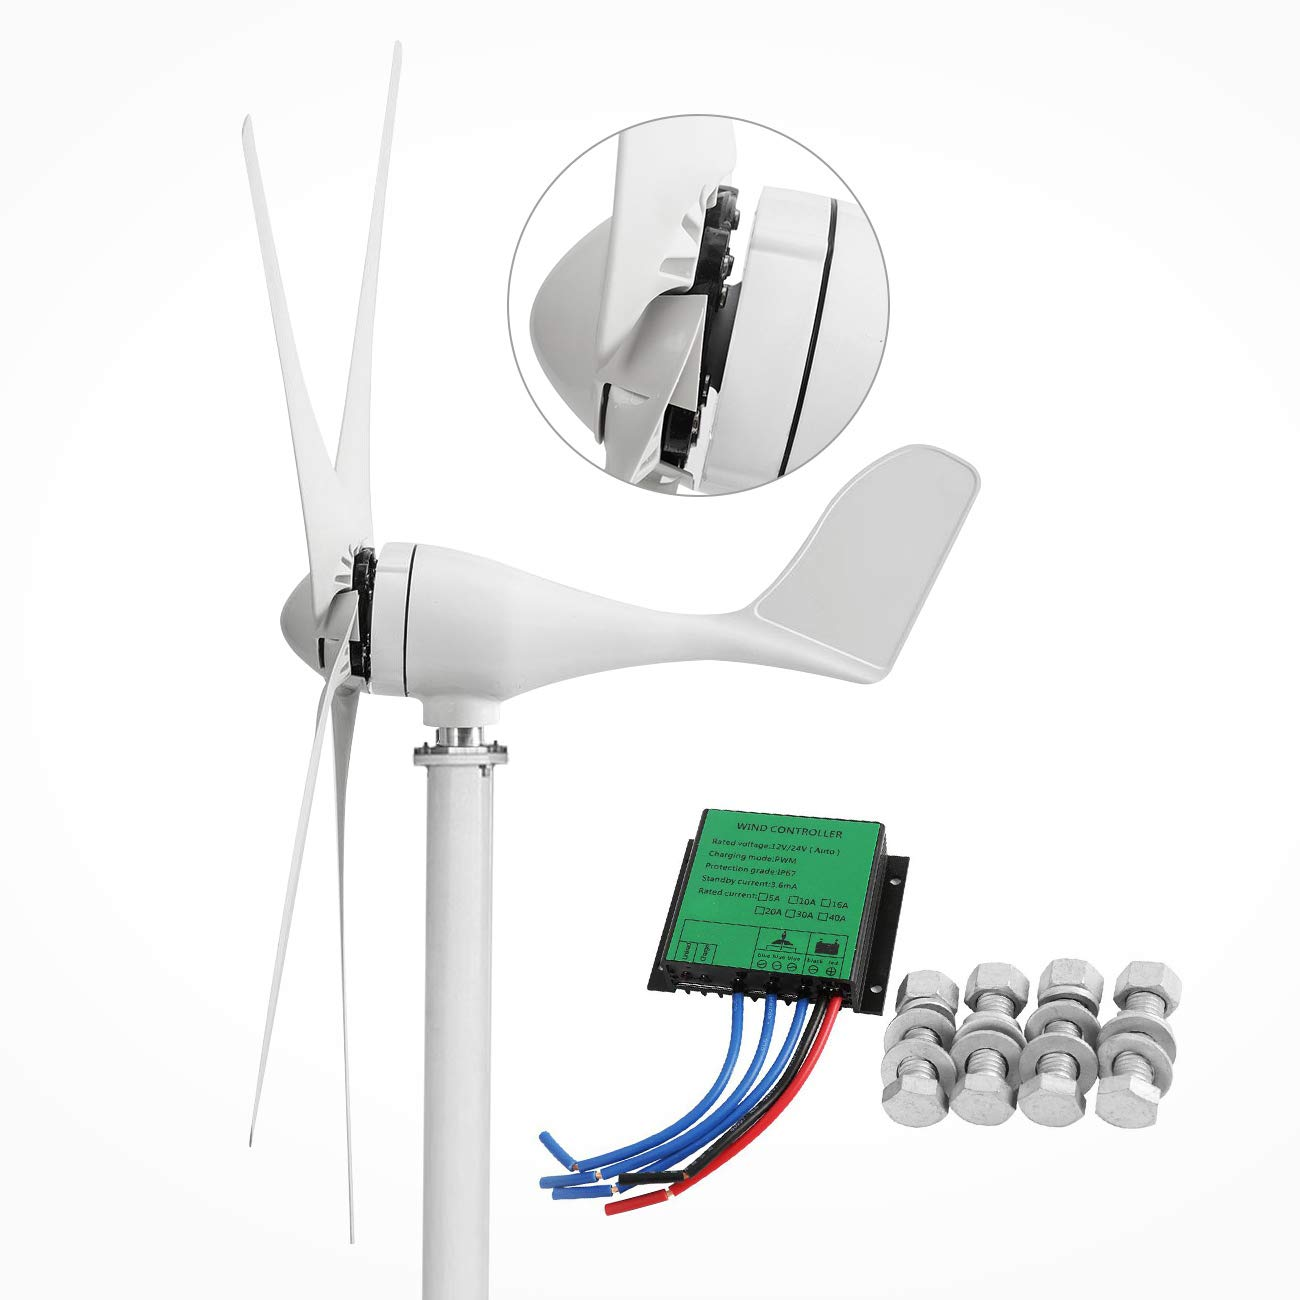 Dyna-Living Wind Turbine Generator 500W DC 12V Wind Turbine 5 Blade Low Wind Speed Starting Bearings Garden Street Lights Wind Turbines with Charge Controller Garden by Dyna-Living